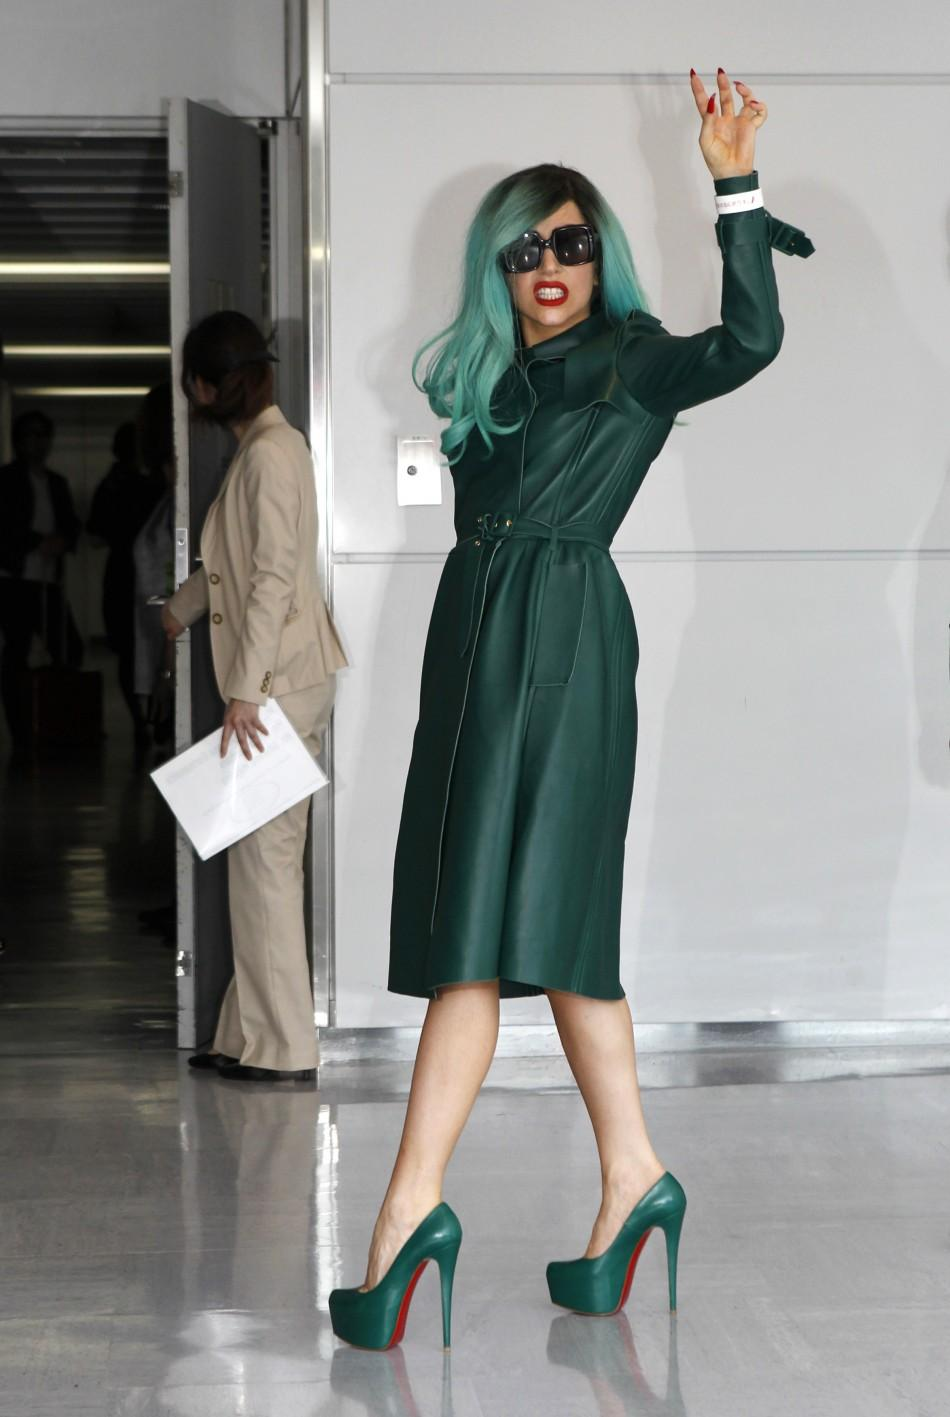 Lady Gaga arrives in Japan